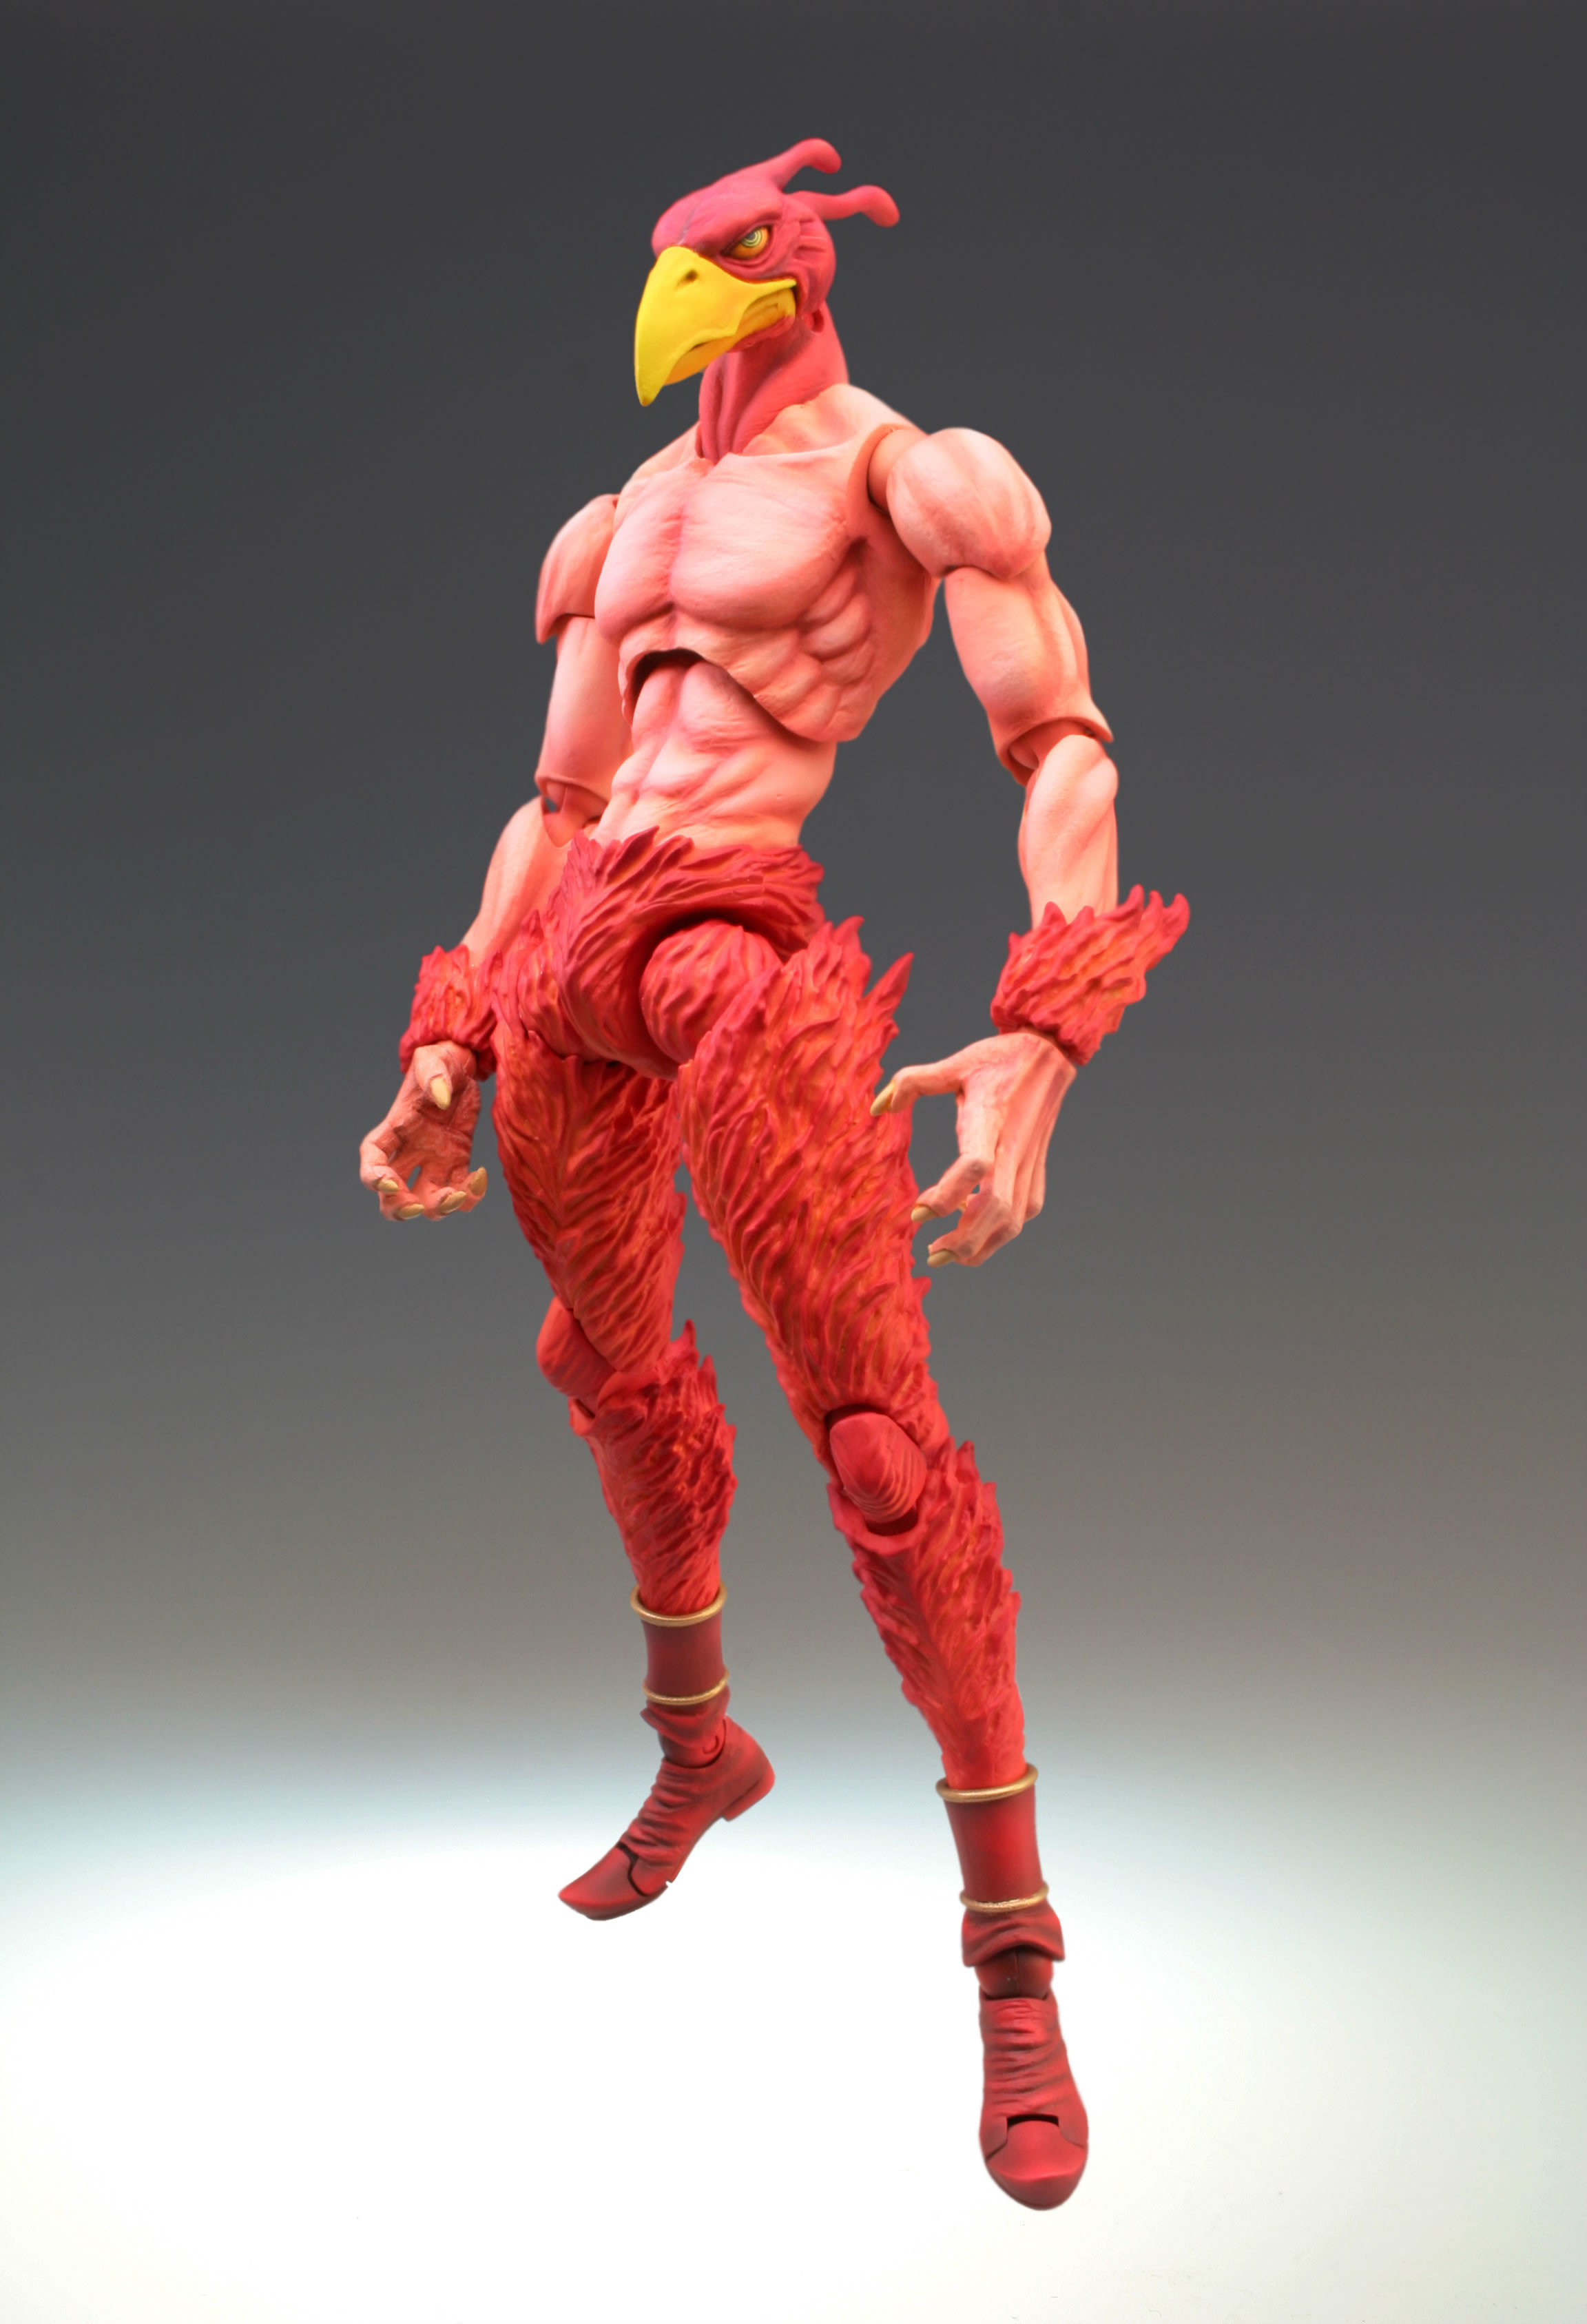 Super Action Statue Magician S Red Hirohiko Araki Color